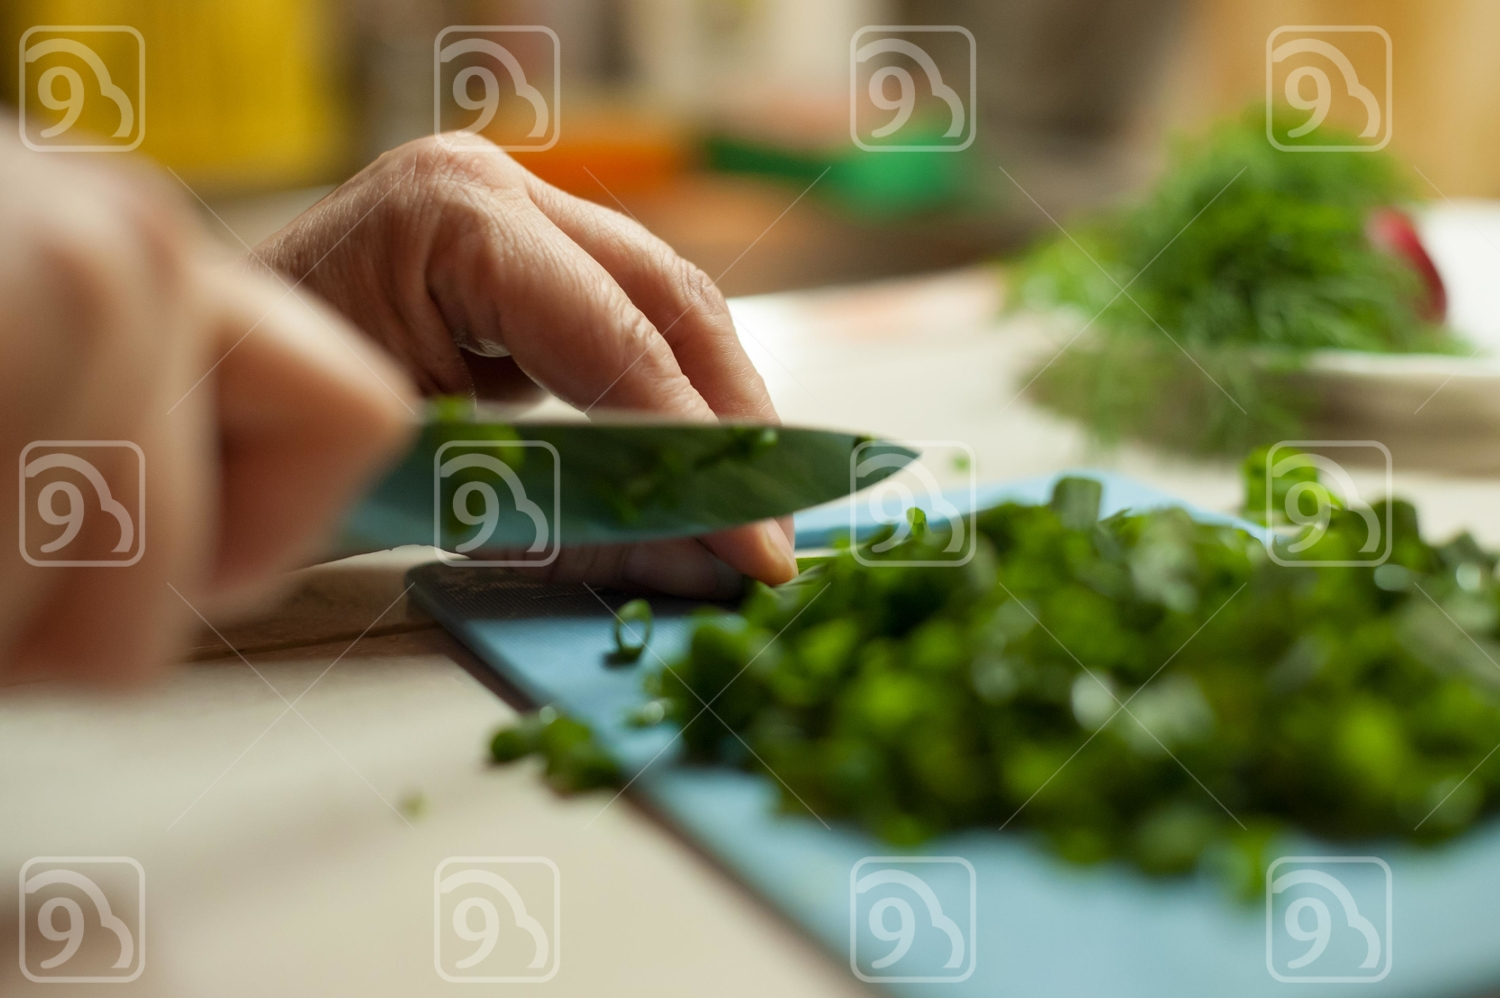 Woman cutting vegetables with a knife